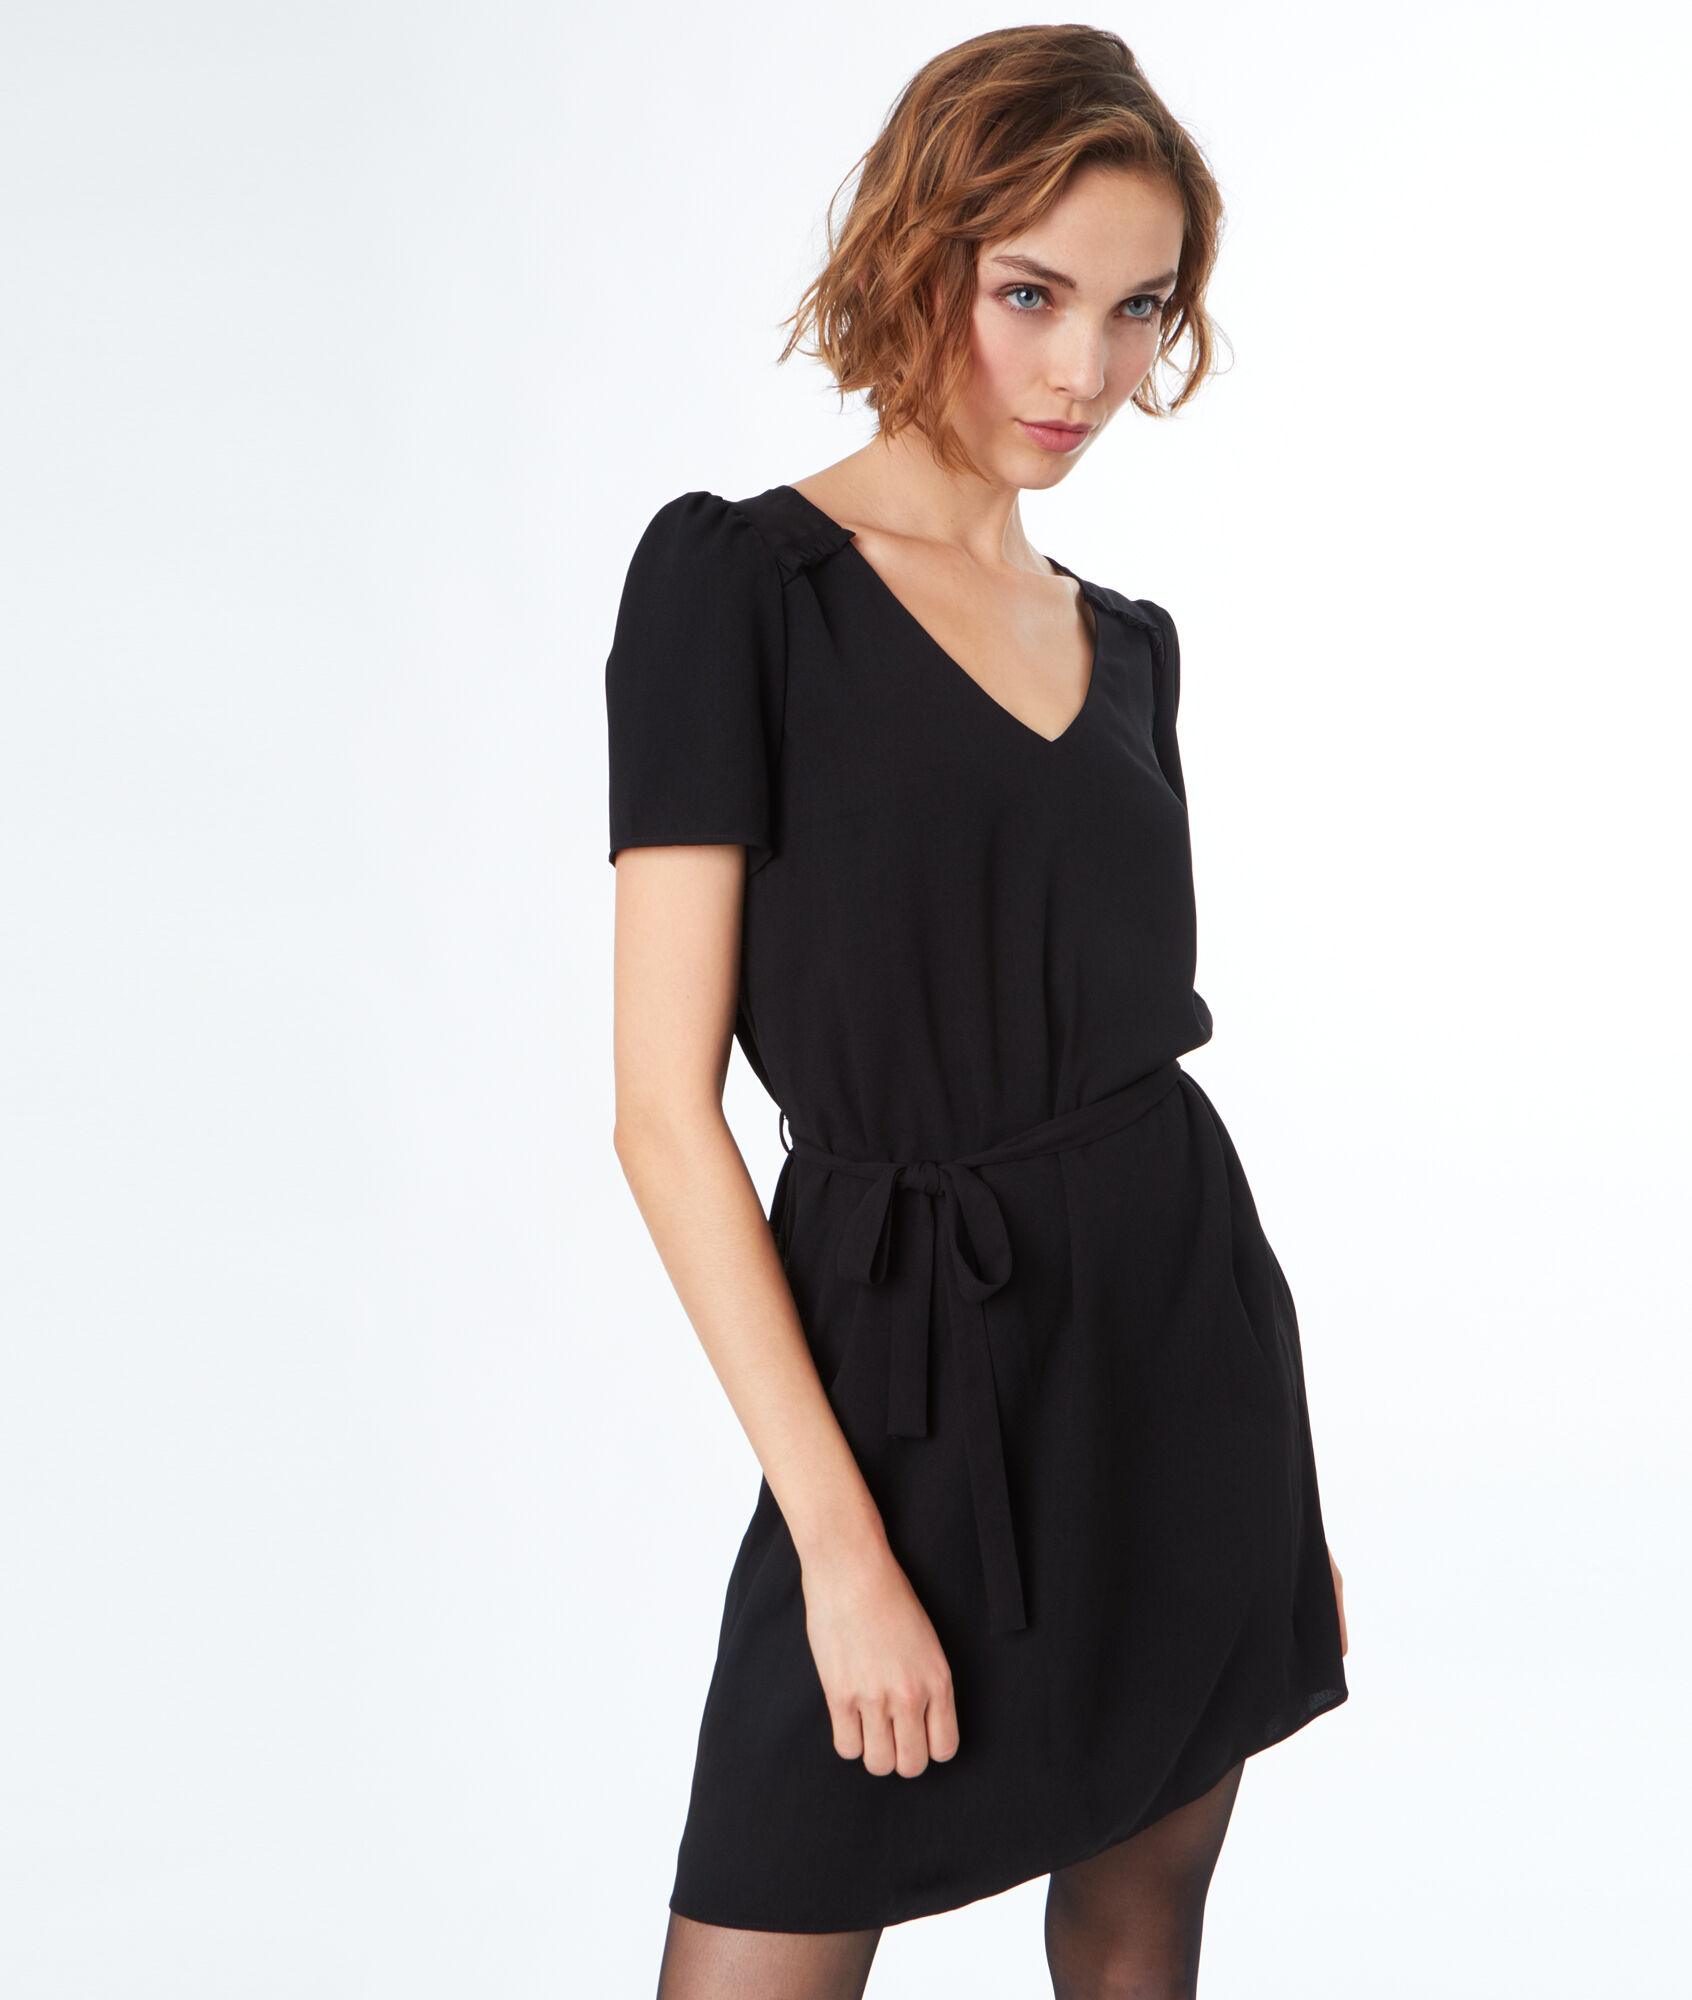 Robe noire cintree manches